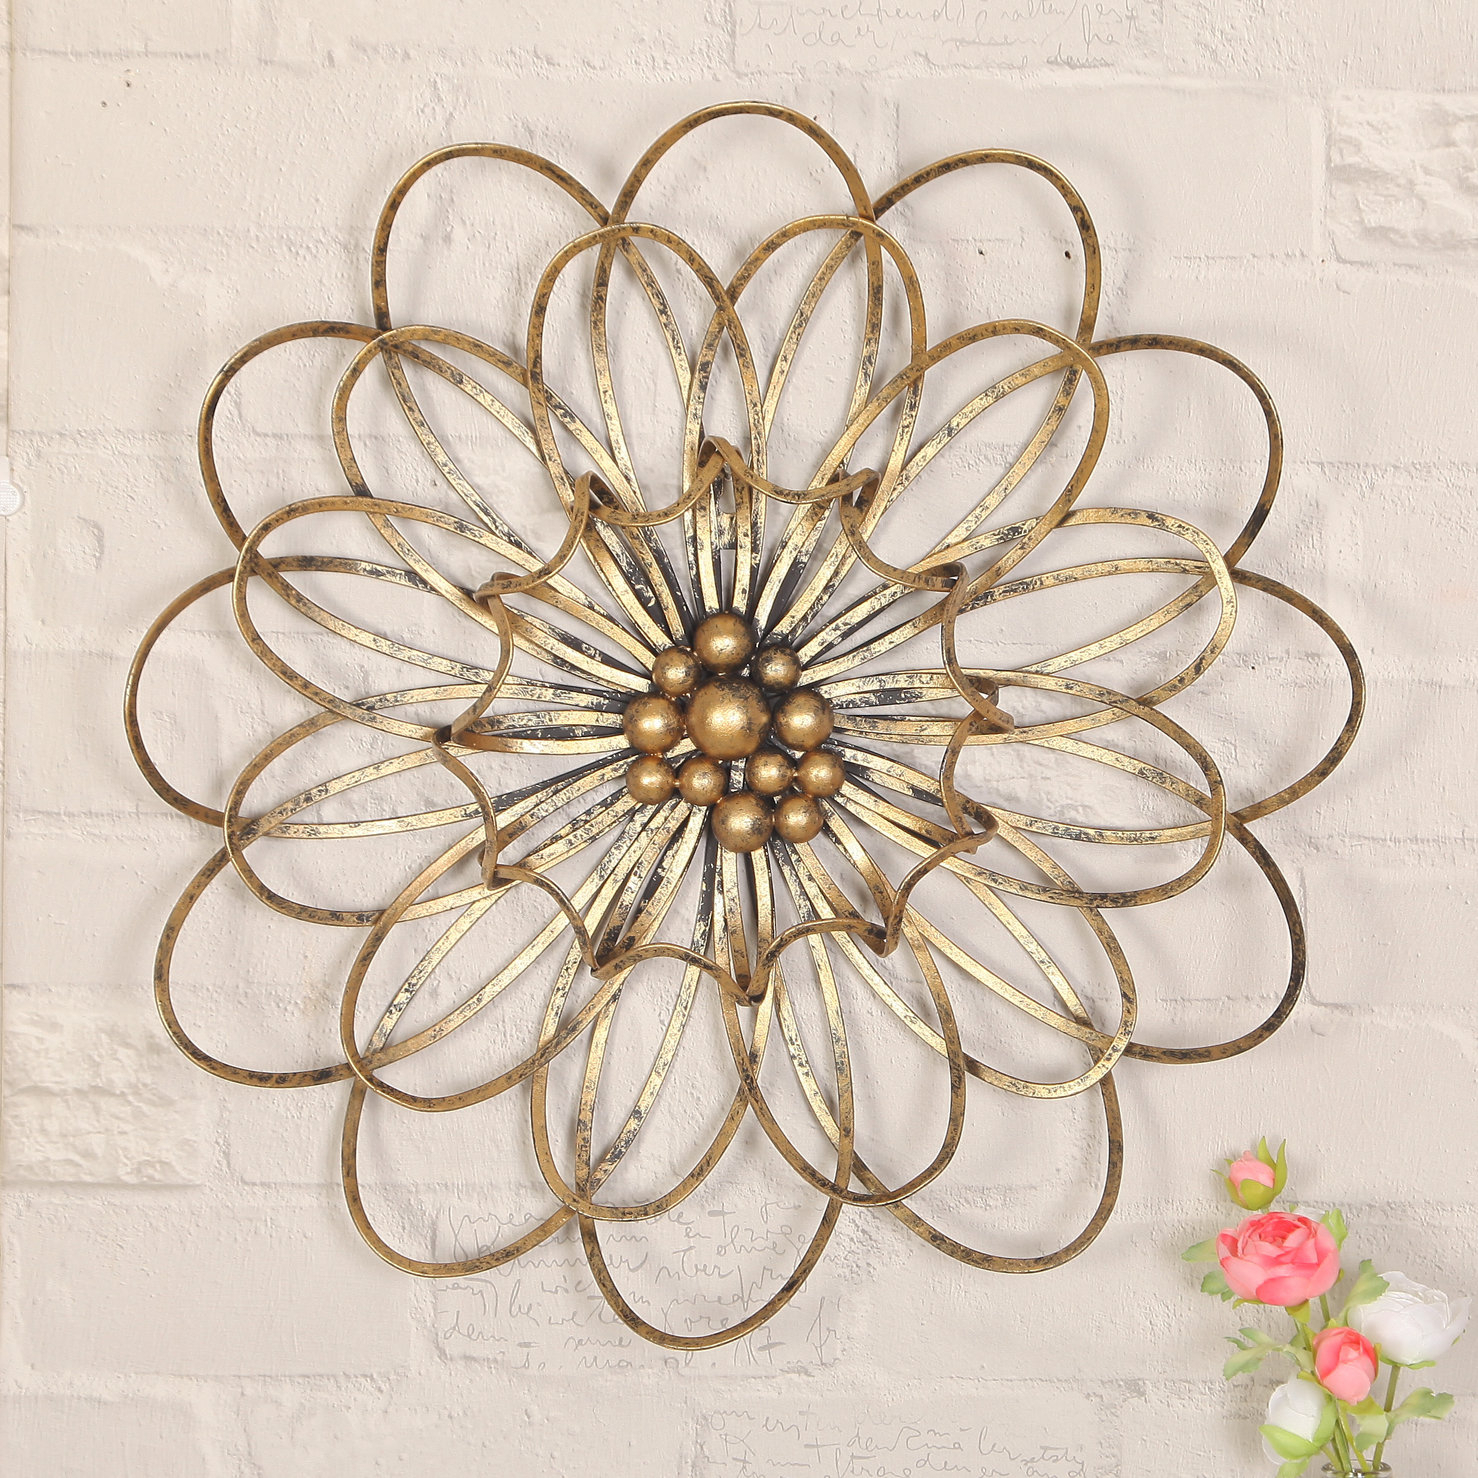 Flower Metal Wall Decor | Wayfair With Regard To Flower And Butterfly Urban Design Metal Wall Decor (View 22 of 30)